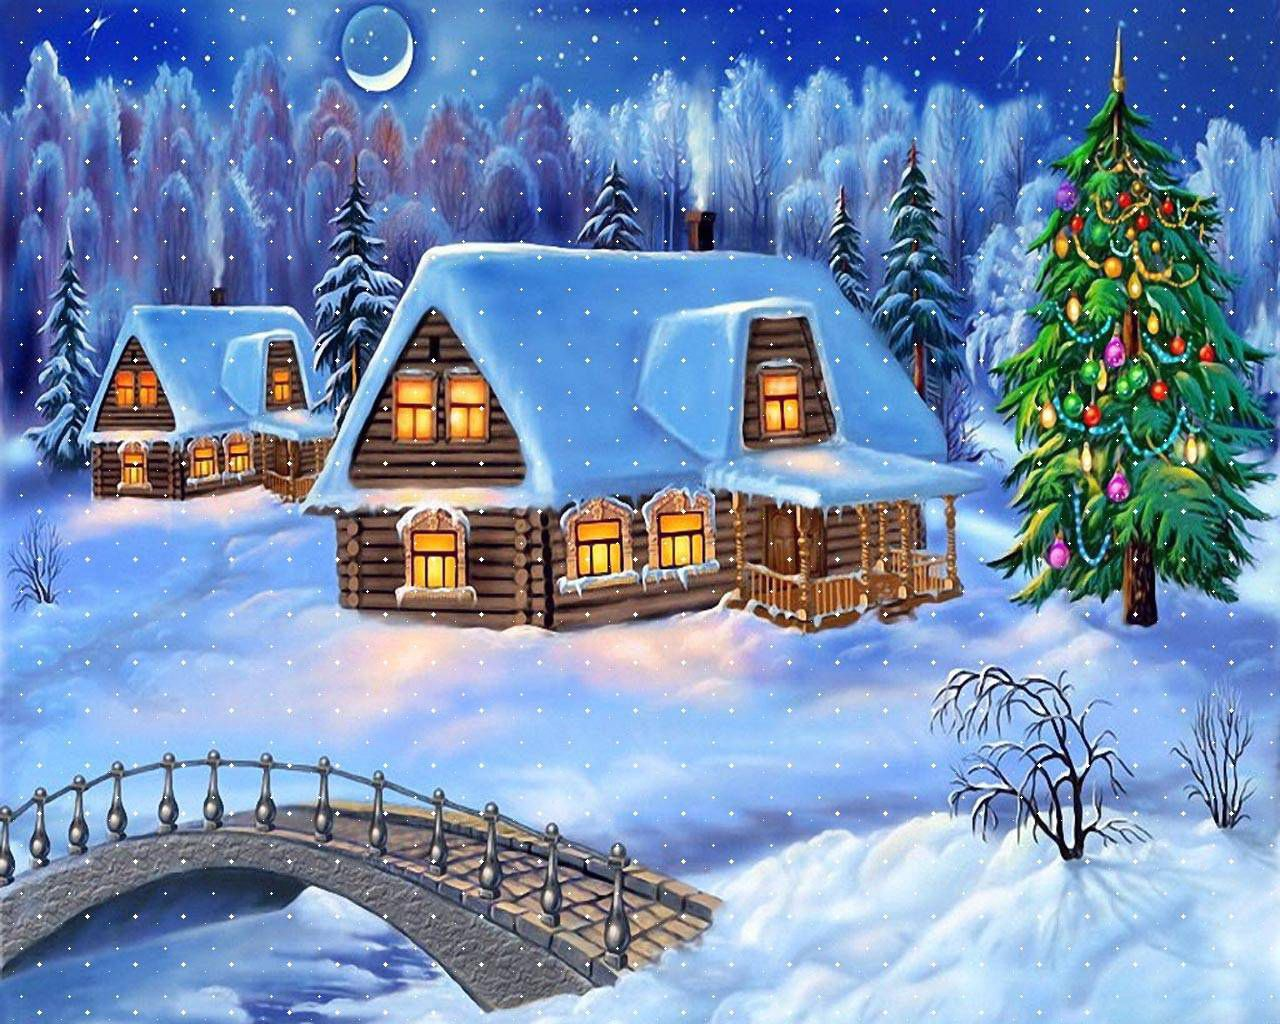 147824 download wallpaper Winter, Holidays, New Year, Snow, Christmas, House, Bridge, Christmas Tree, Postcard screensavers and pictures for free